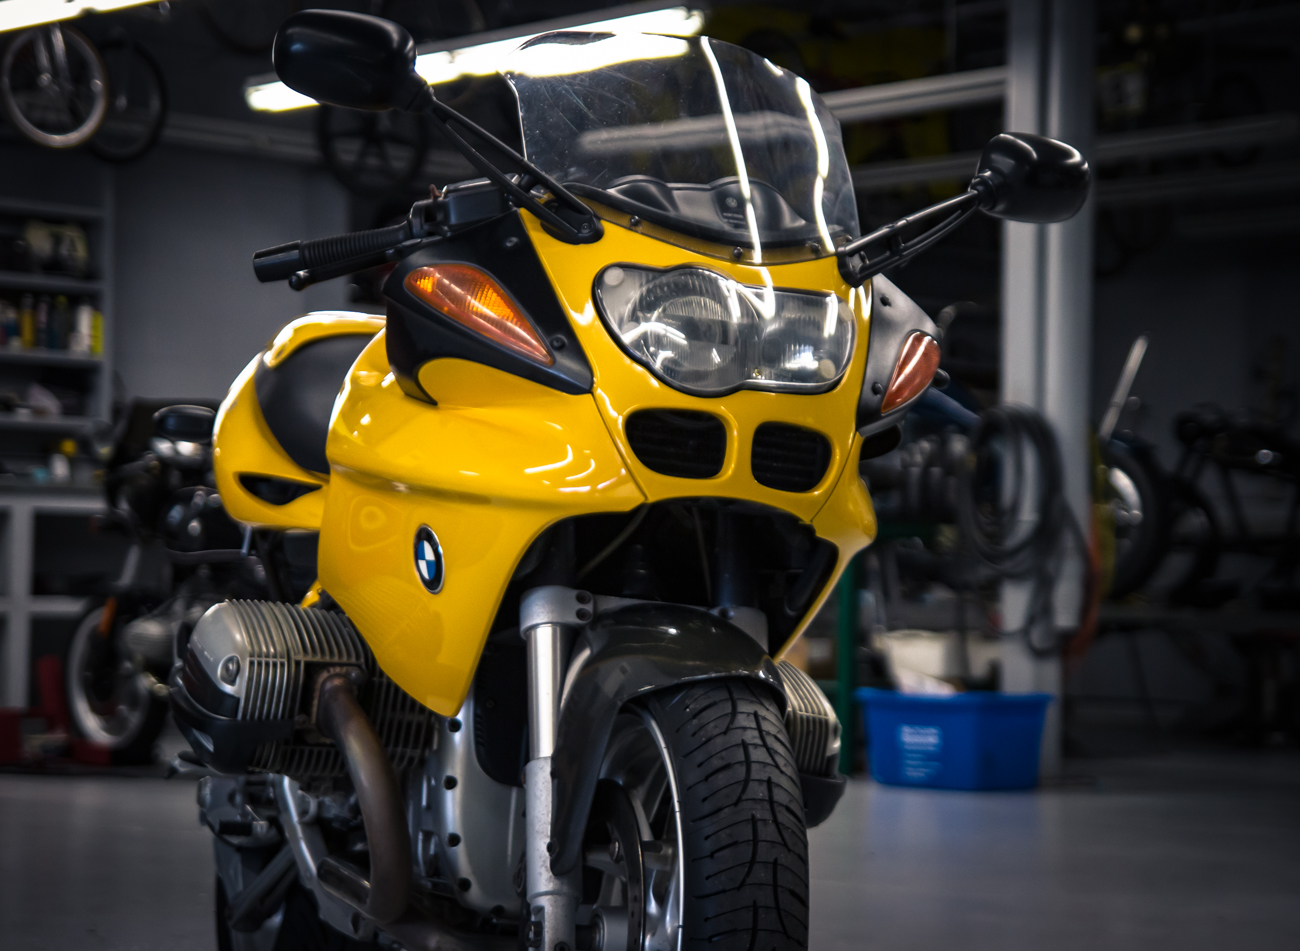 Yellow R1100s BMW for sale photos atx moto-18.jpg